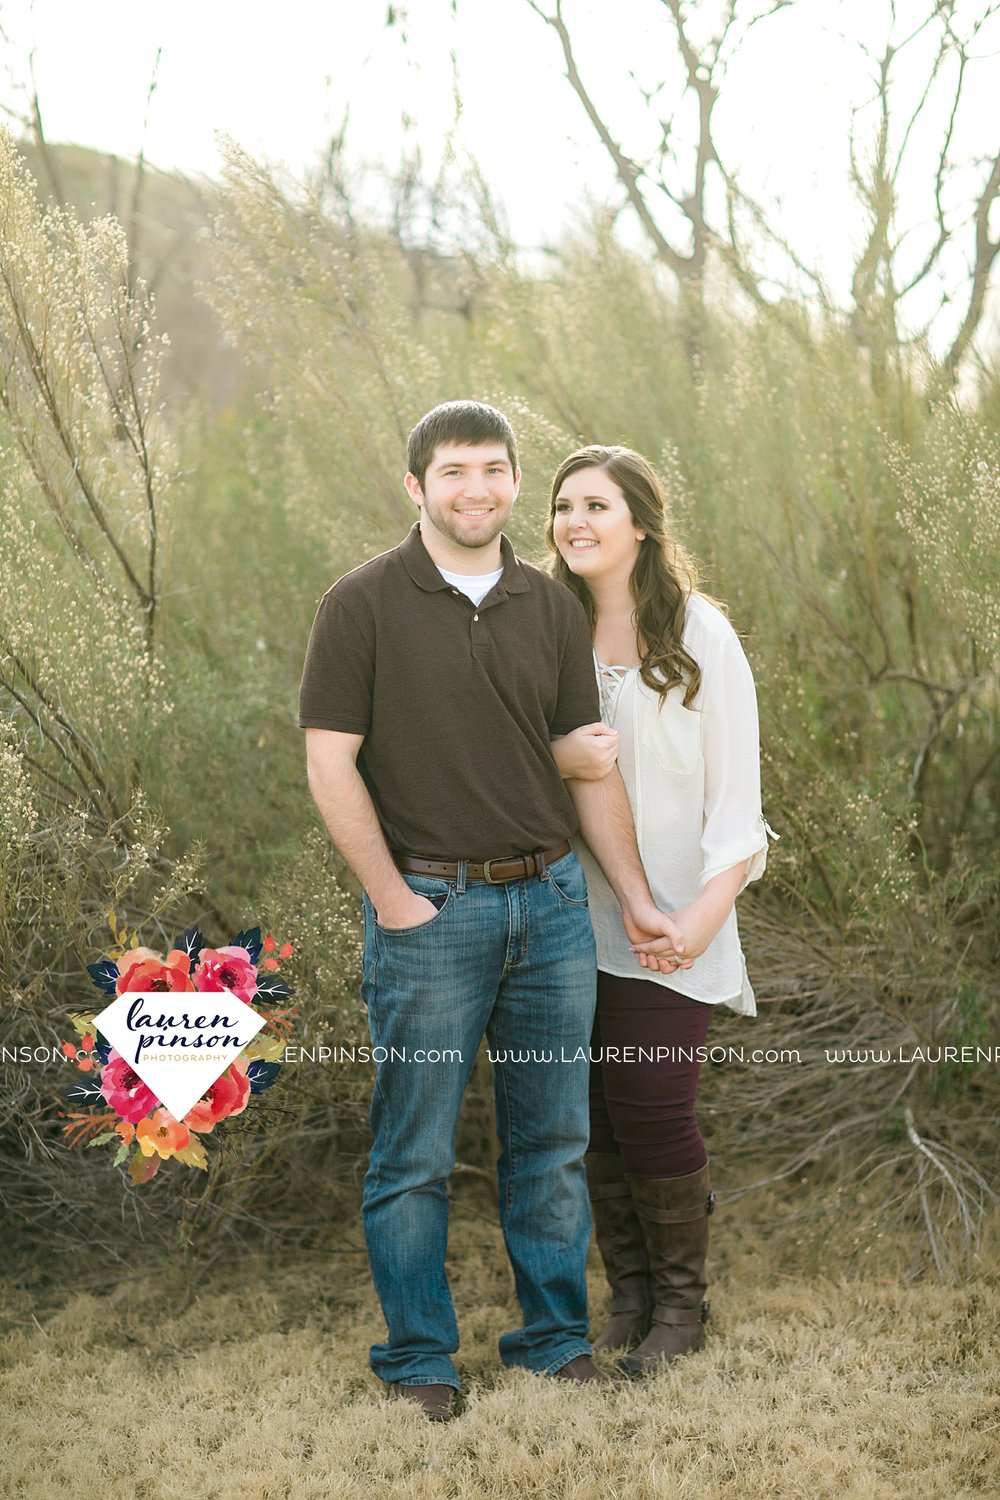 wichita-falls-texas-photographer-burkburnett-engagement-session-wichita-mountains-police-officer_4164.jpg